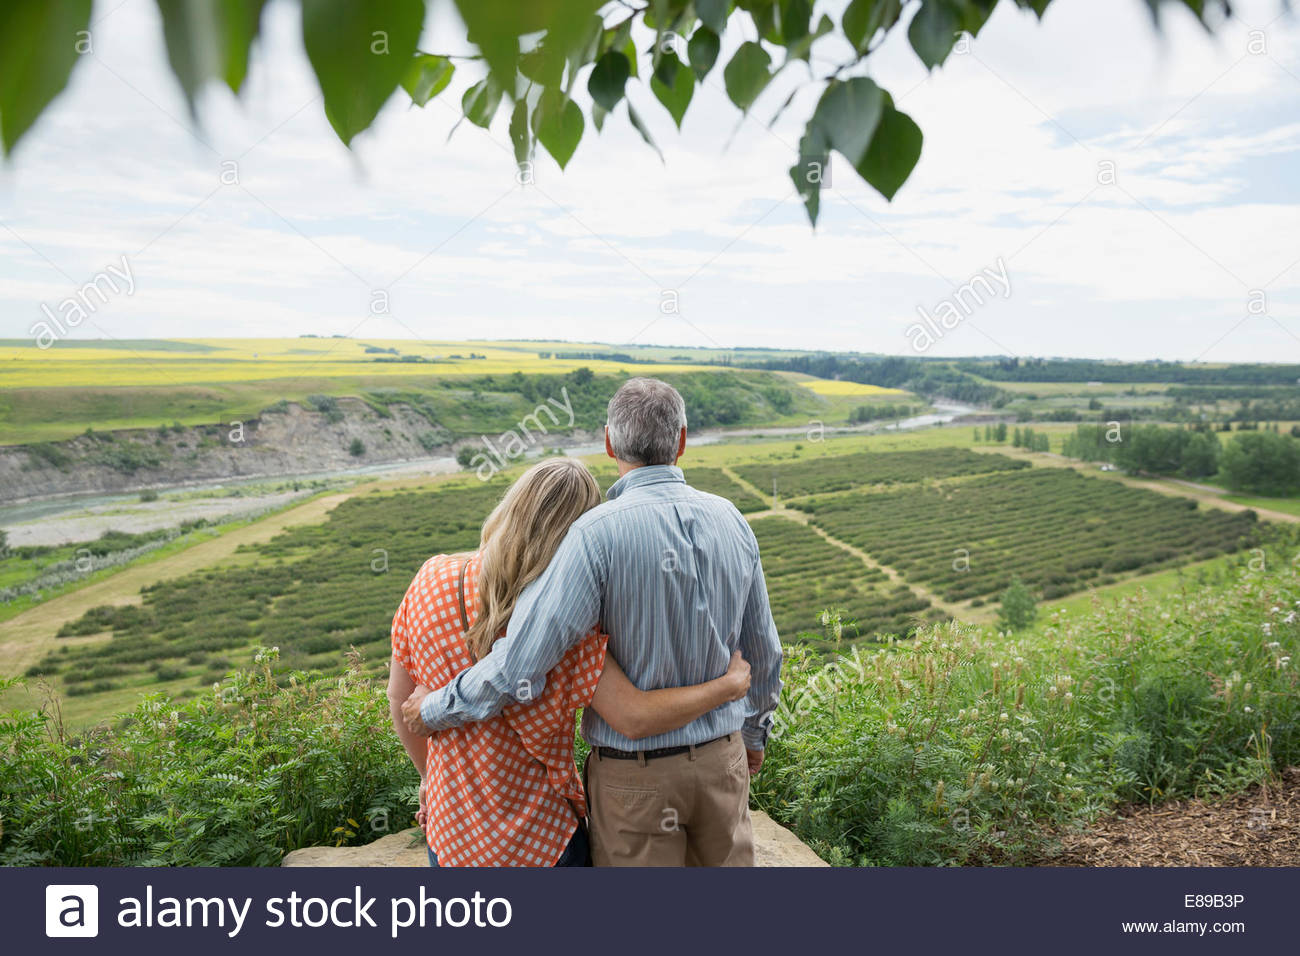 Hugging couple looking at view de campagne Photo Stock